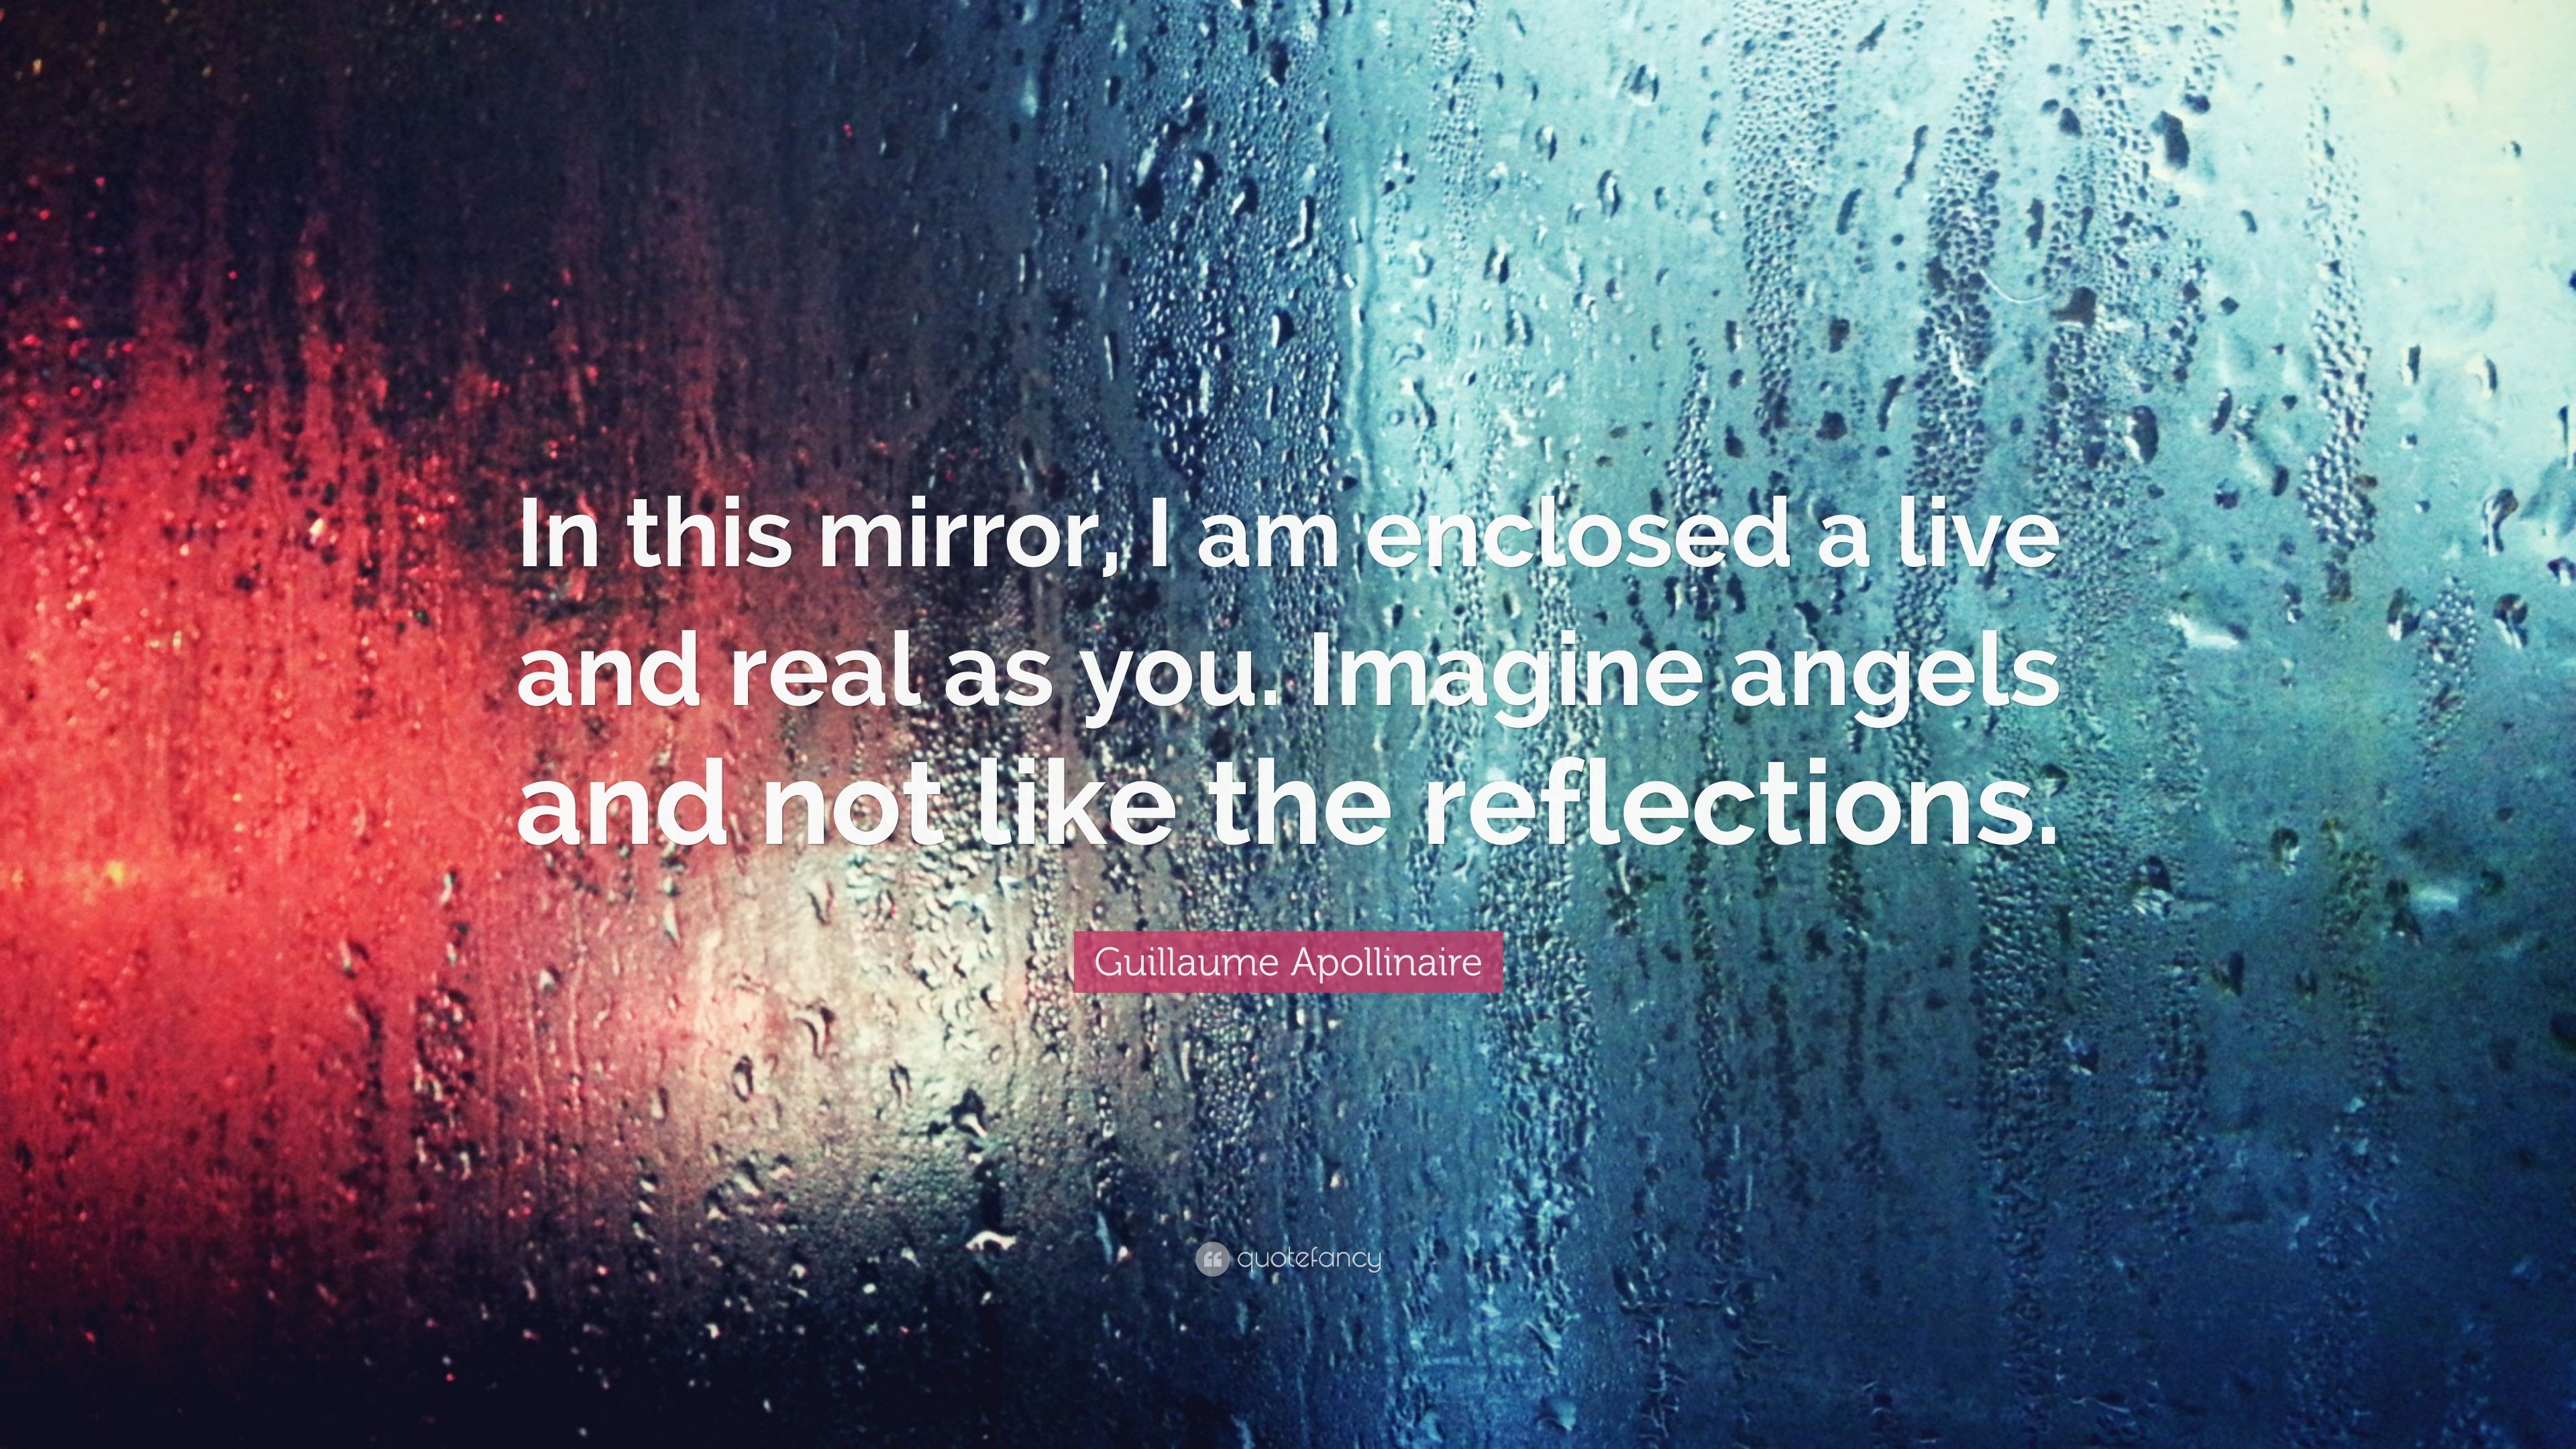 Android Wallpaper Broken Heart Source Angel In The Mirror Live Gadget And PC